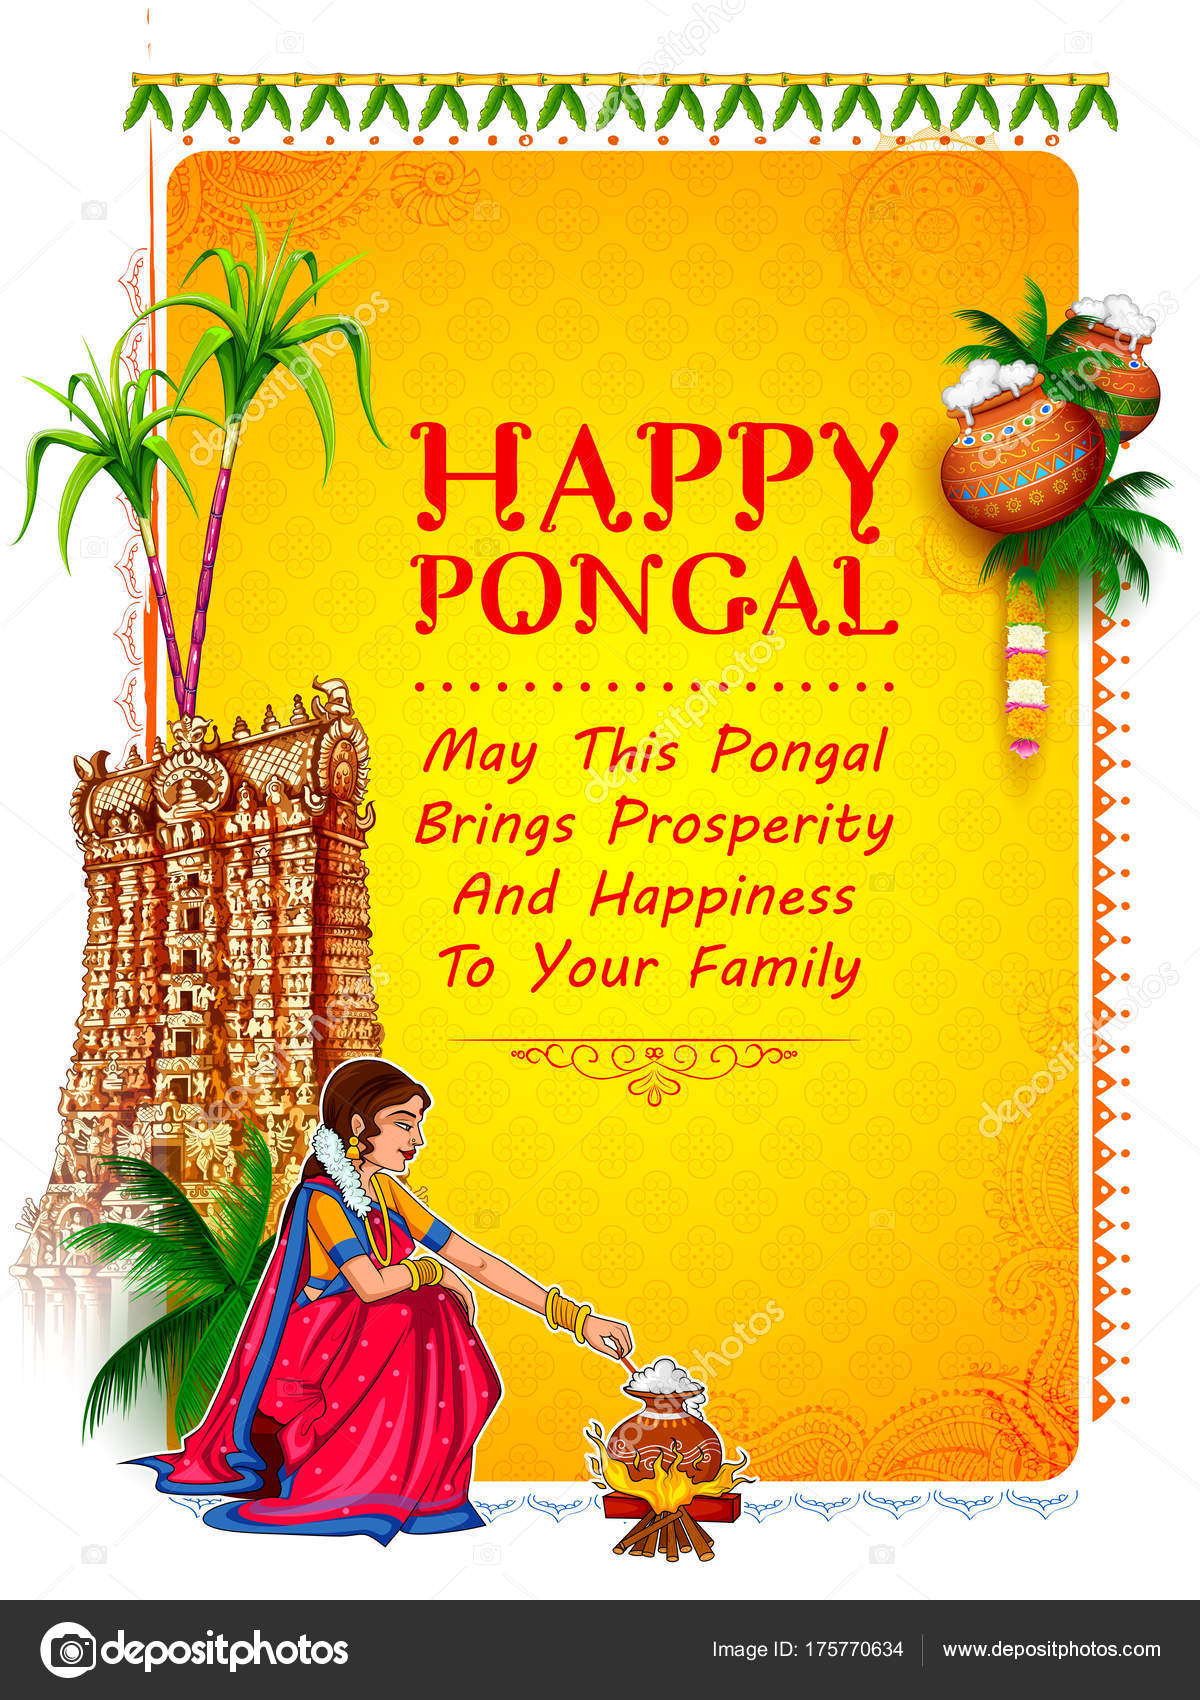 Happy pongal holiday harvest festival of tamil nadu south india happy pongal holiday harvest festival of tamil nadu south india greeting background stock vector kristyandbryce Images